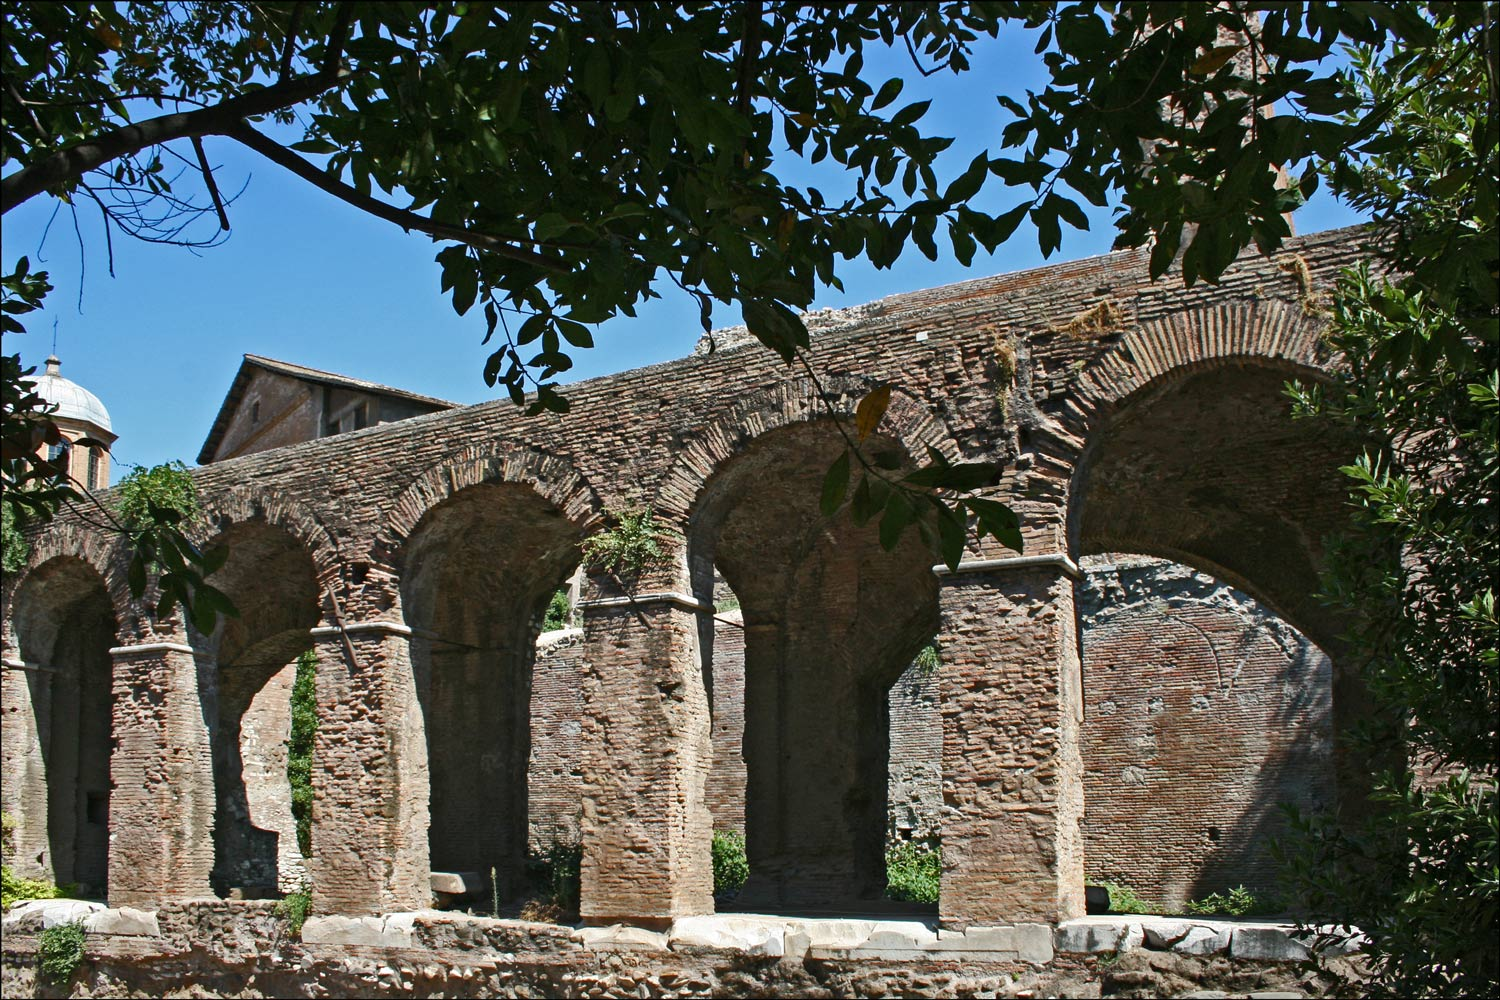 Arches near the Basilica of Maxentius